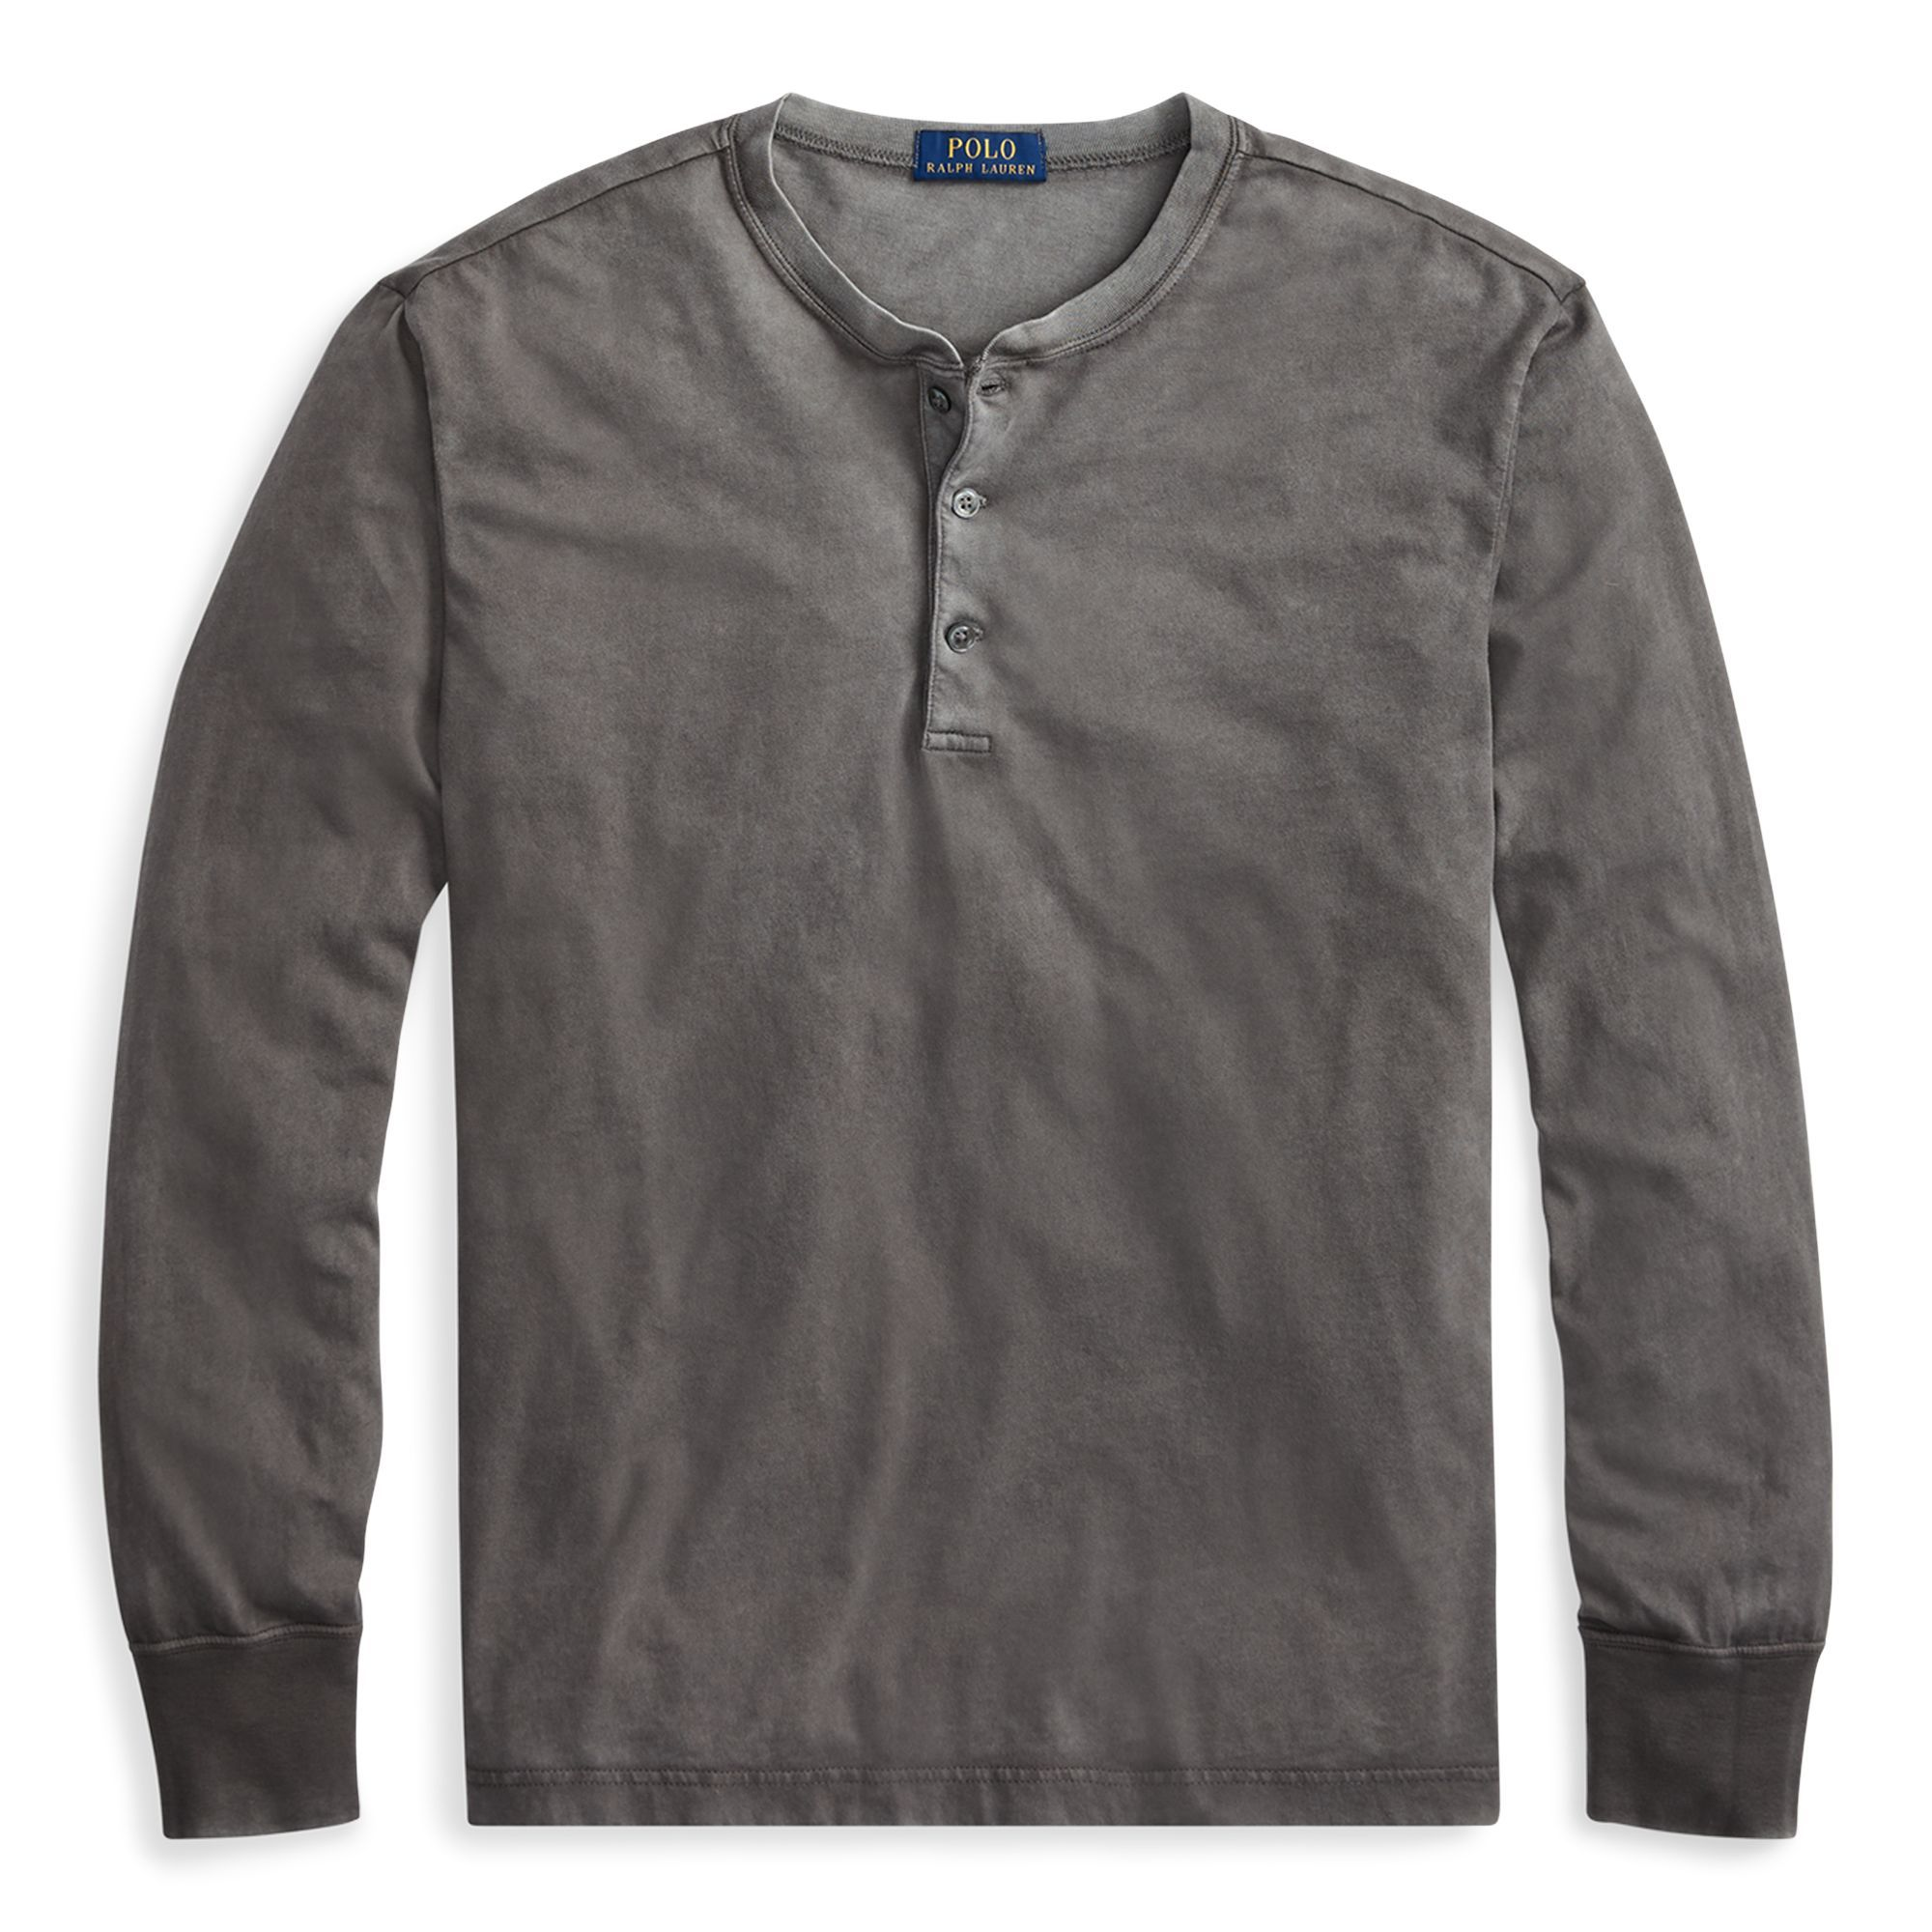 3323c91defa The 11 Best Henley Shirts for Men to Wear Fall 2018